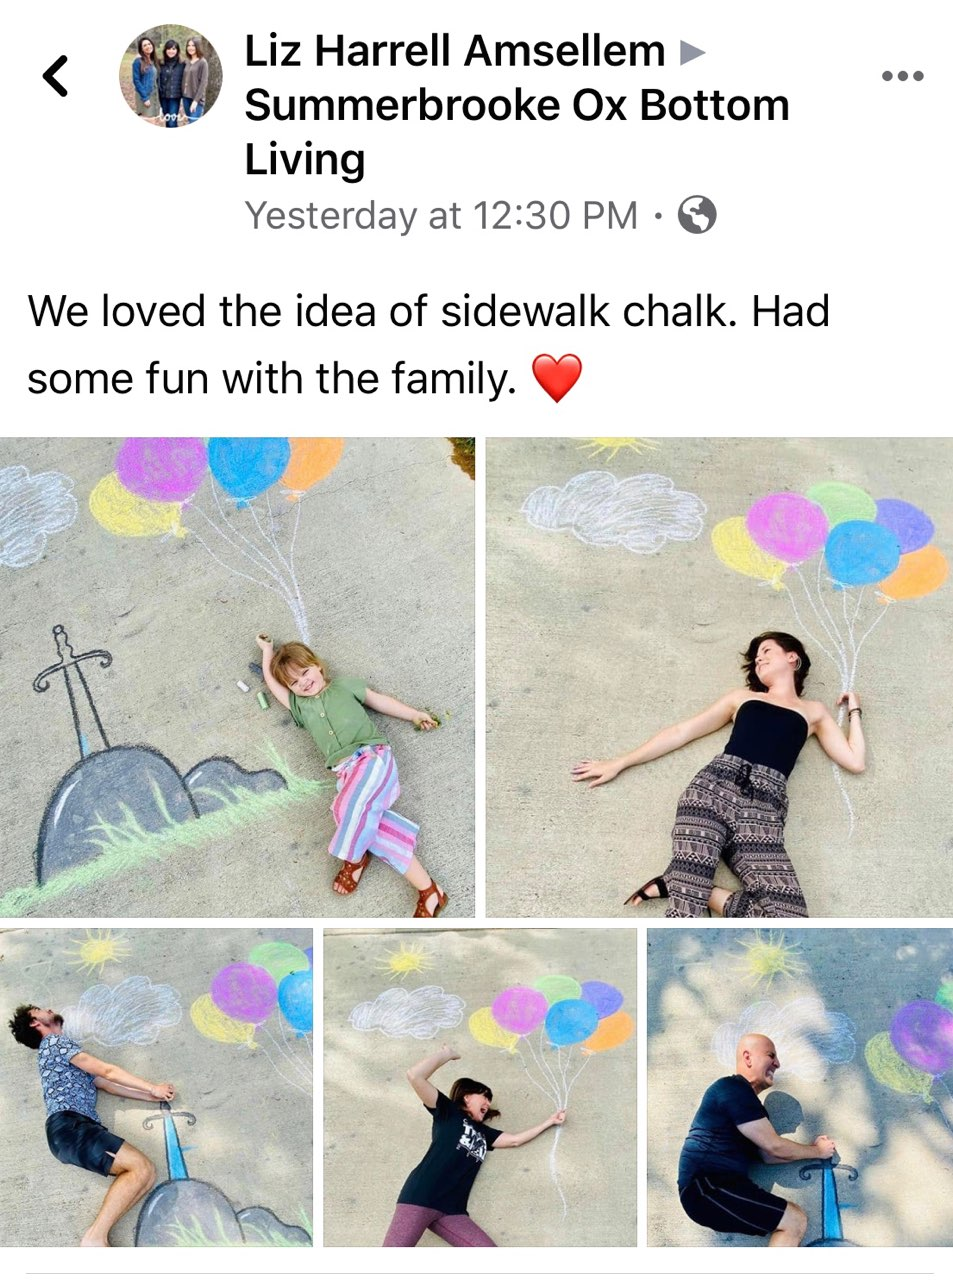 We loved the idea of sidewalk chalk. Had some fun with the family.